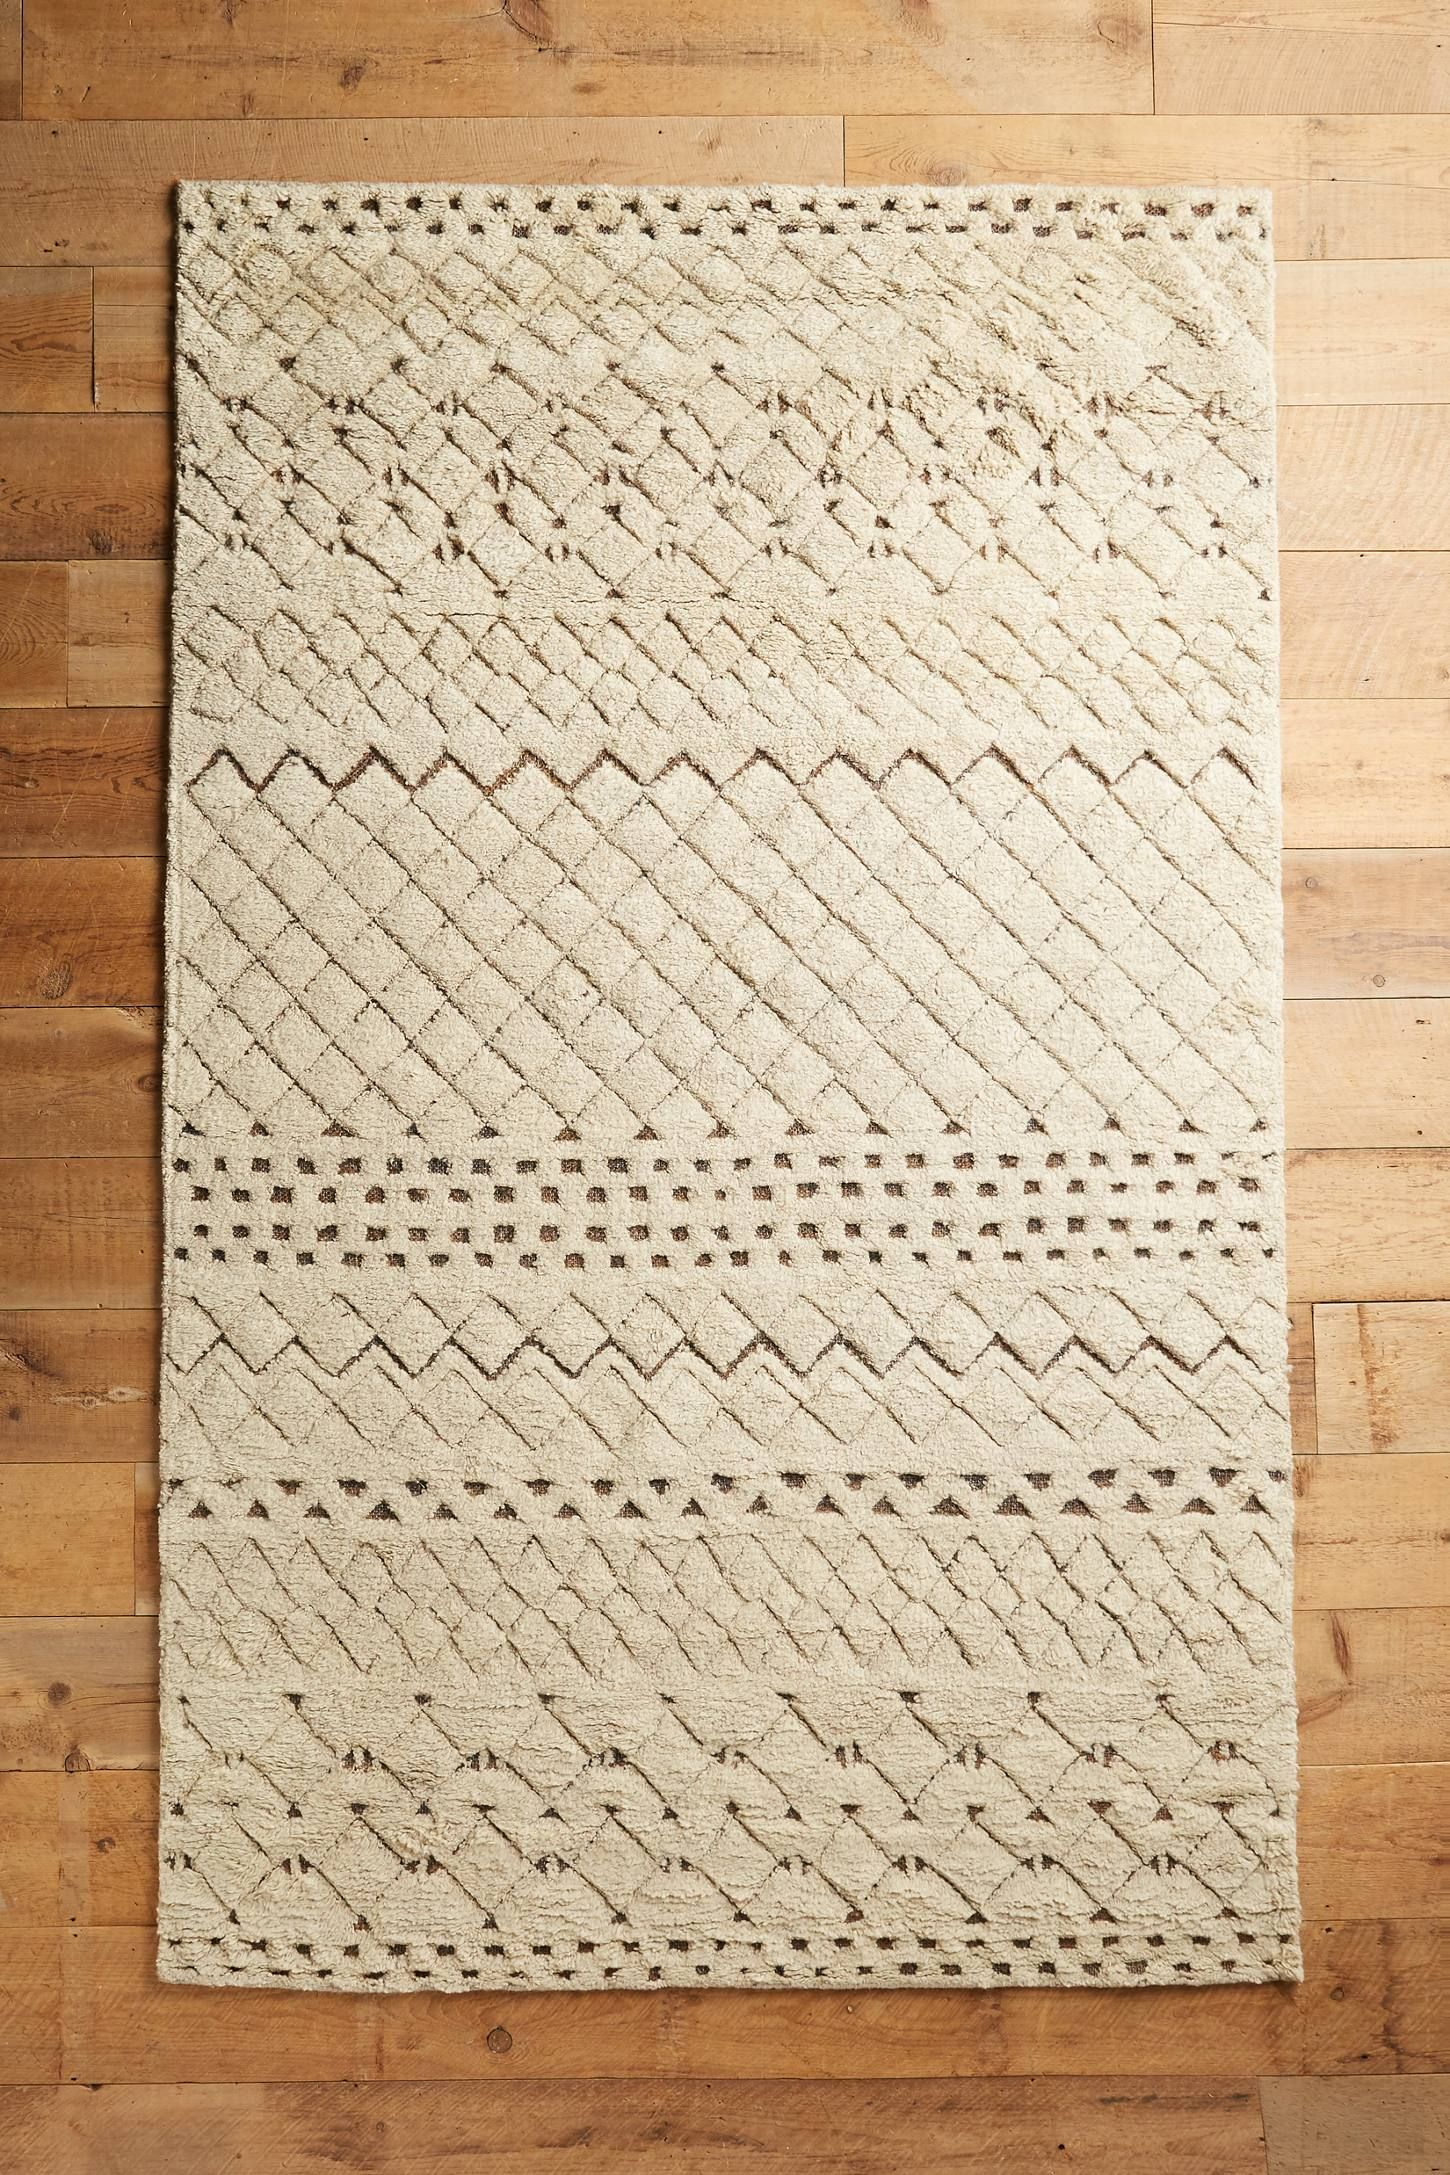 Shop the Taborana Rug and more Anthropologie